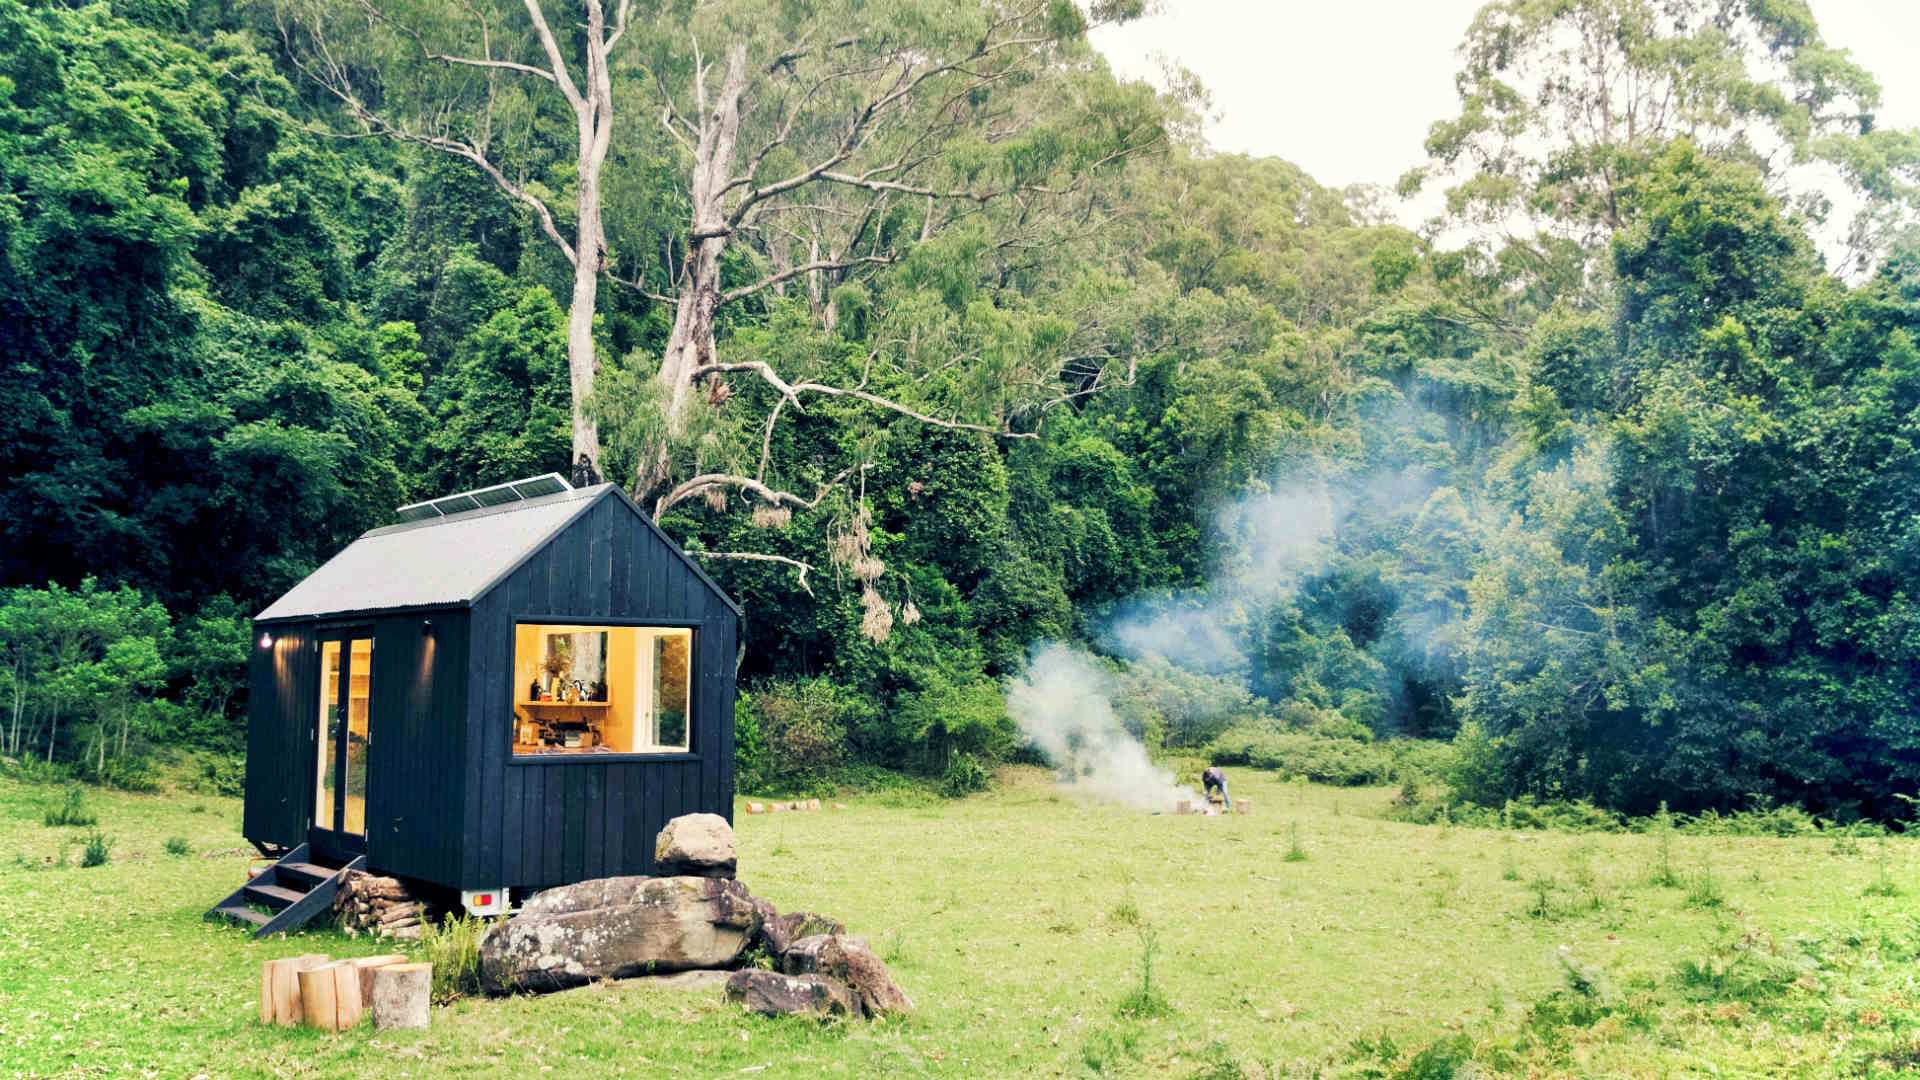 This New Writer's Residency Will Put You in a Tiny House in the Wilderness to Get Shit Done